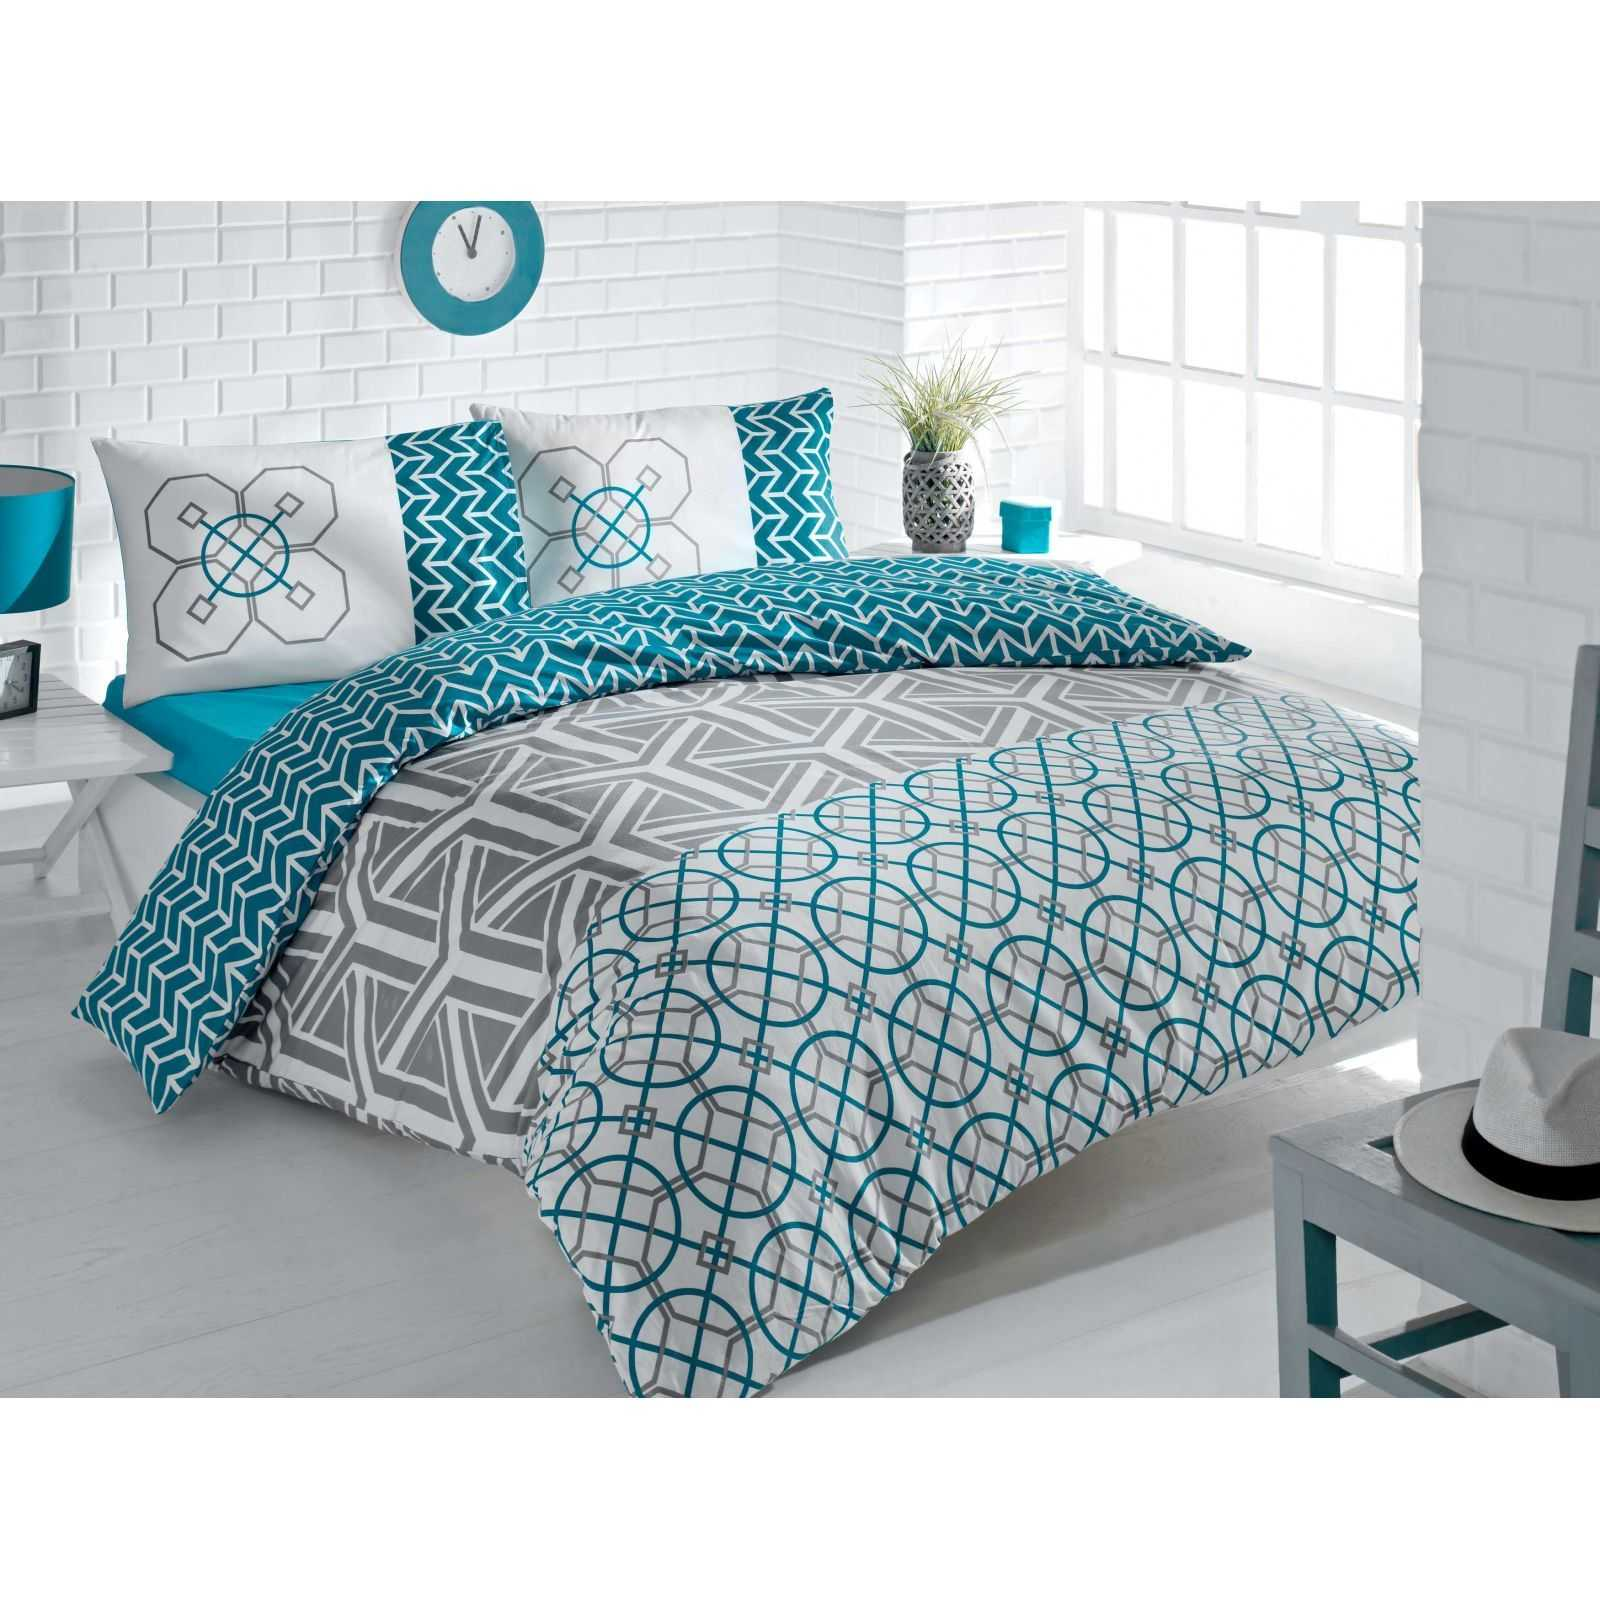 victoria home parure de lit turquoise brandalley. Black Bedroom Furniture Sets. Home Design Ideas